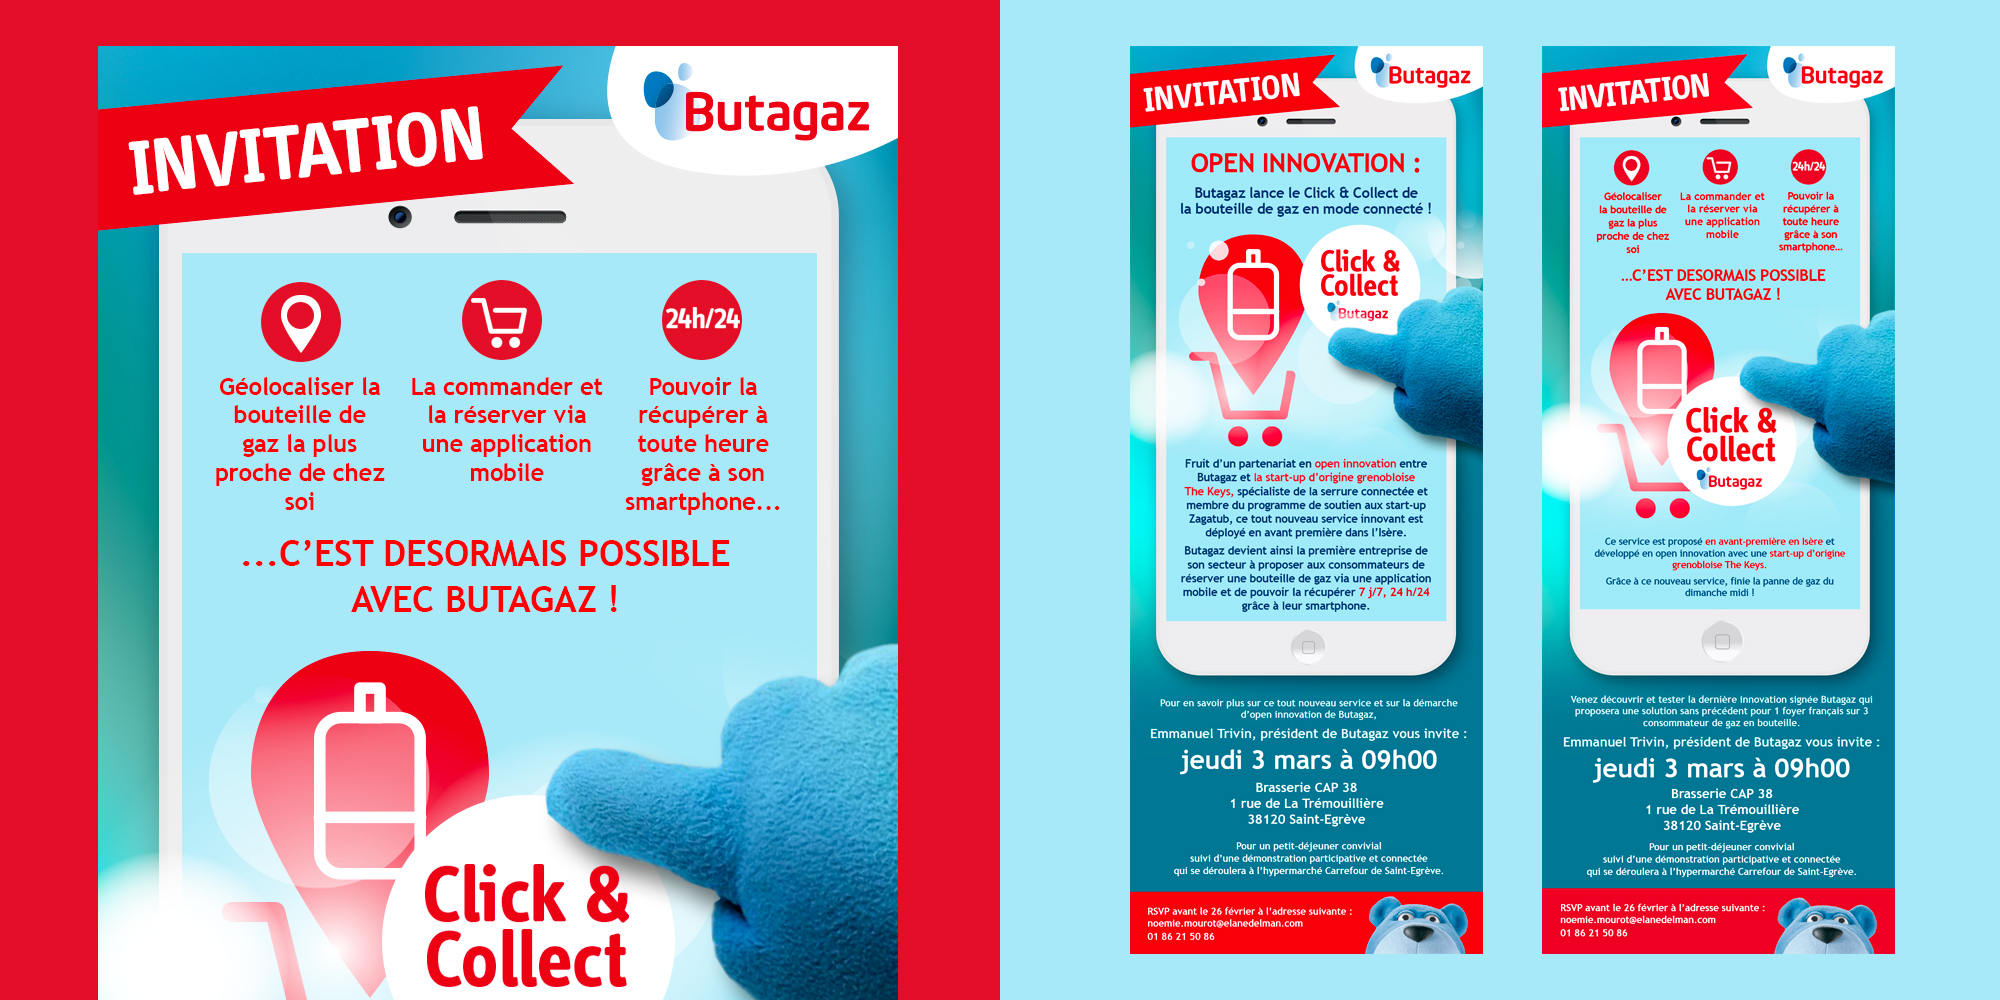 Butagaz - Click & Collect - emailing - IDDP